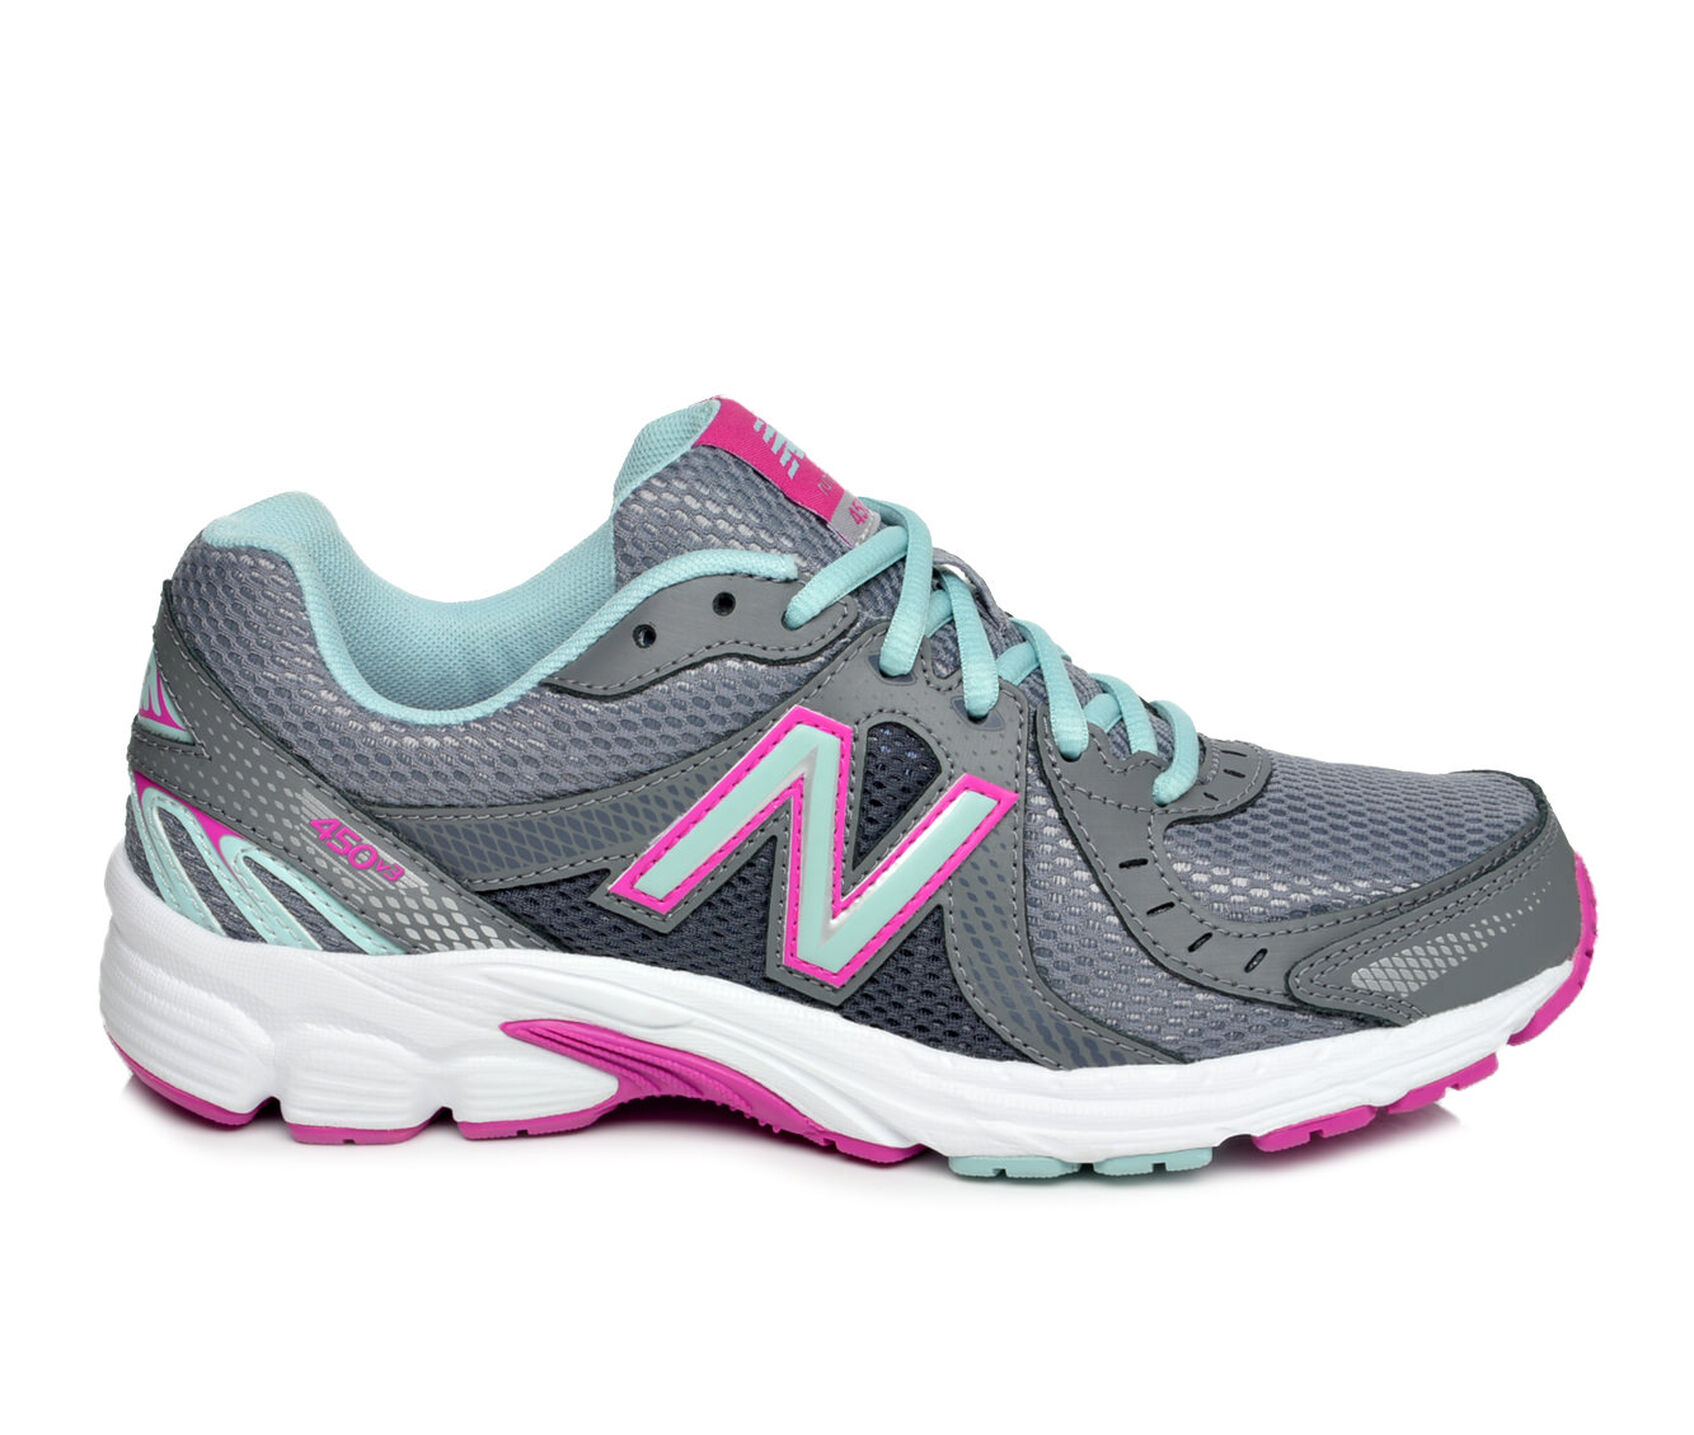 New Balance Shoes Good For Walking